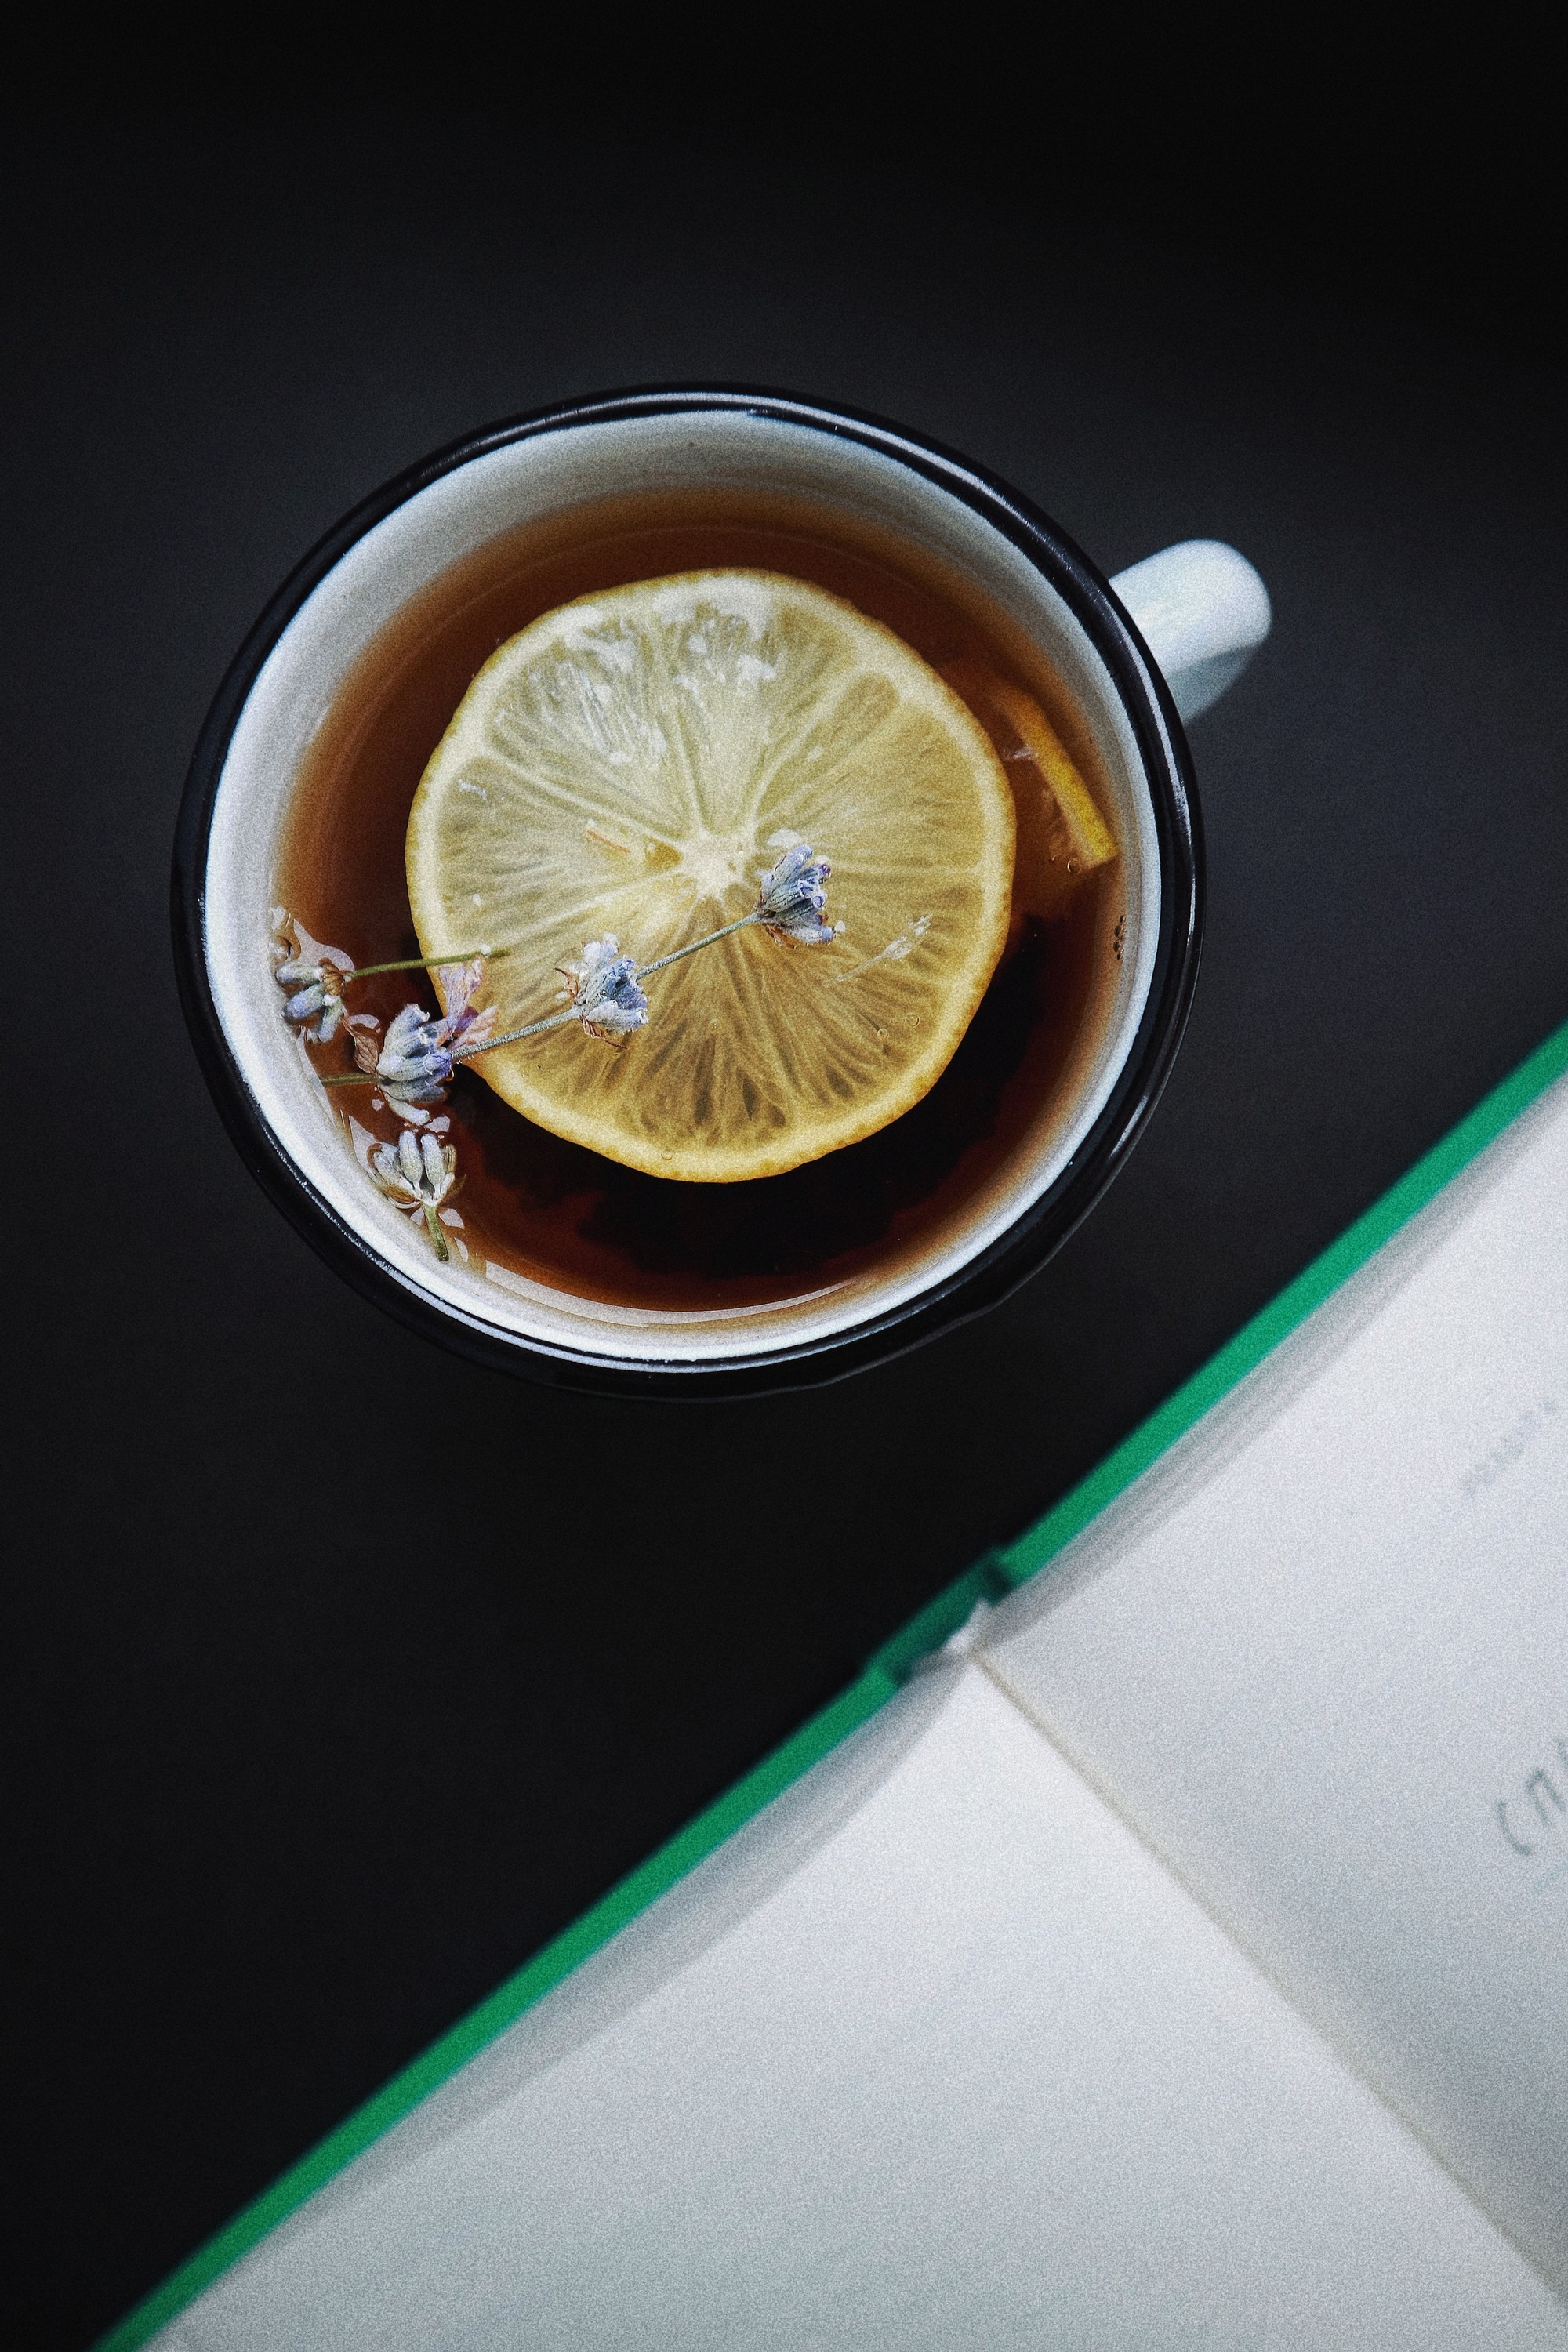 teacup with dark liquid and a slice of lemon sat next to an open notebook.